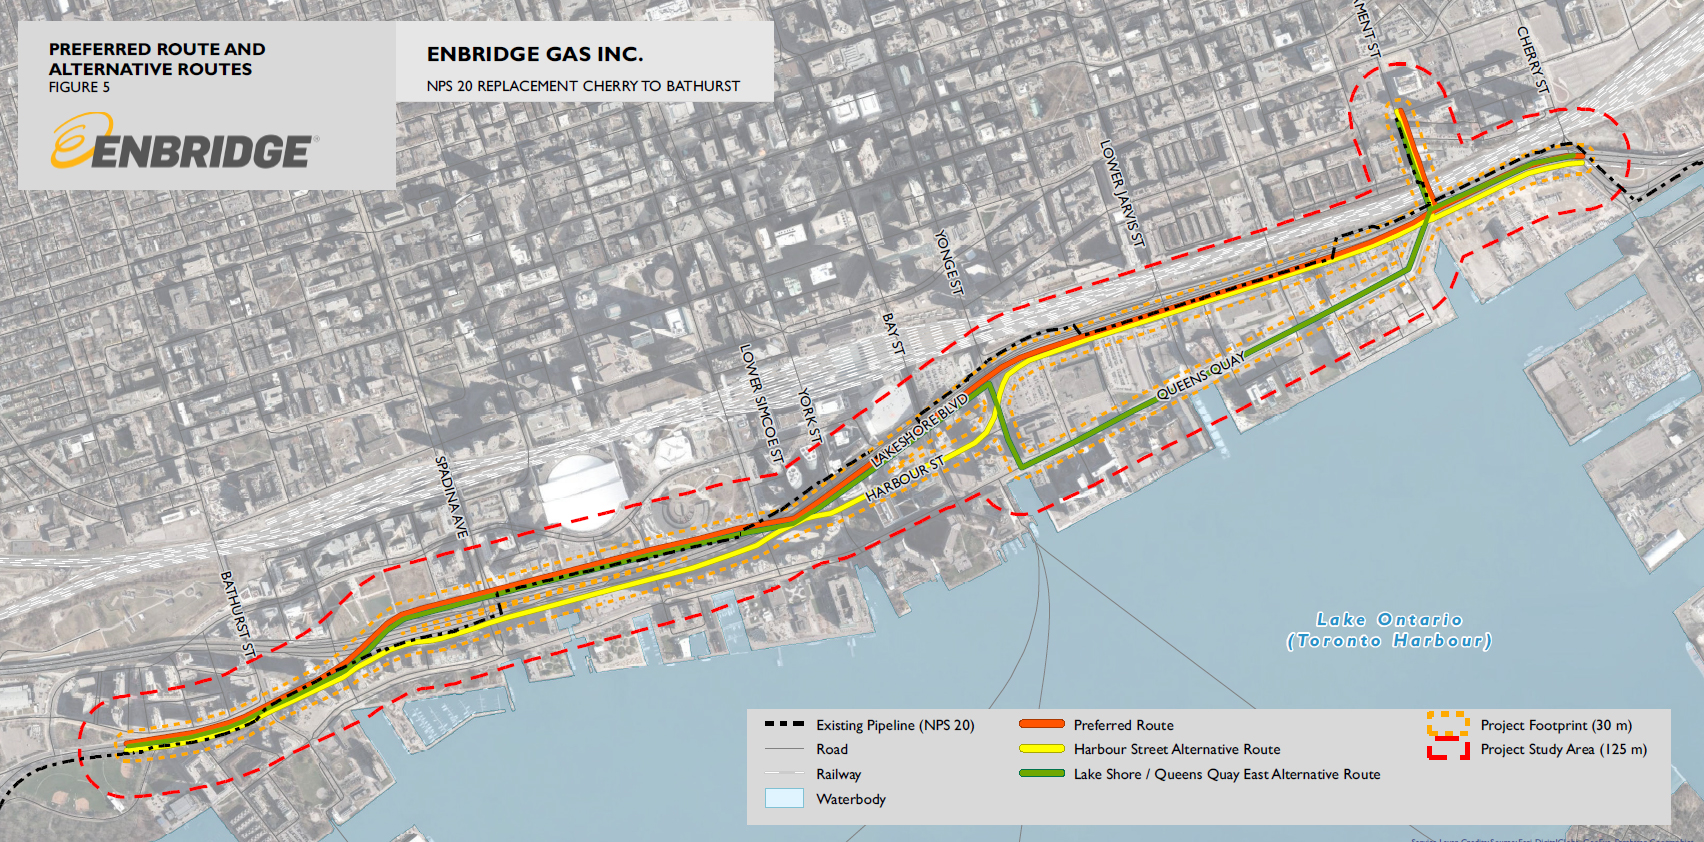 Map of Enbridge's pipeline options showing Lakeshore Blvd as the preferred route